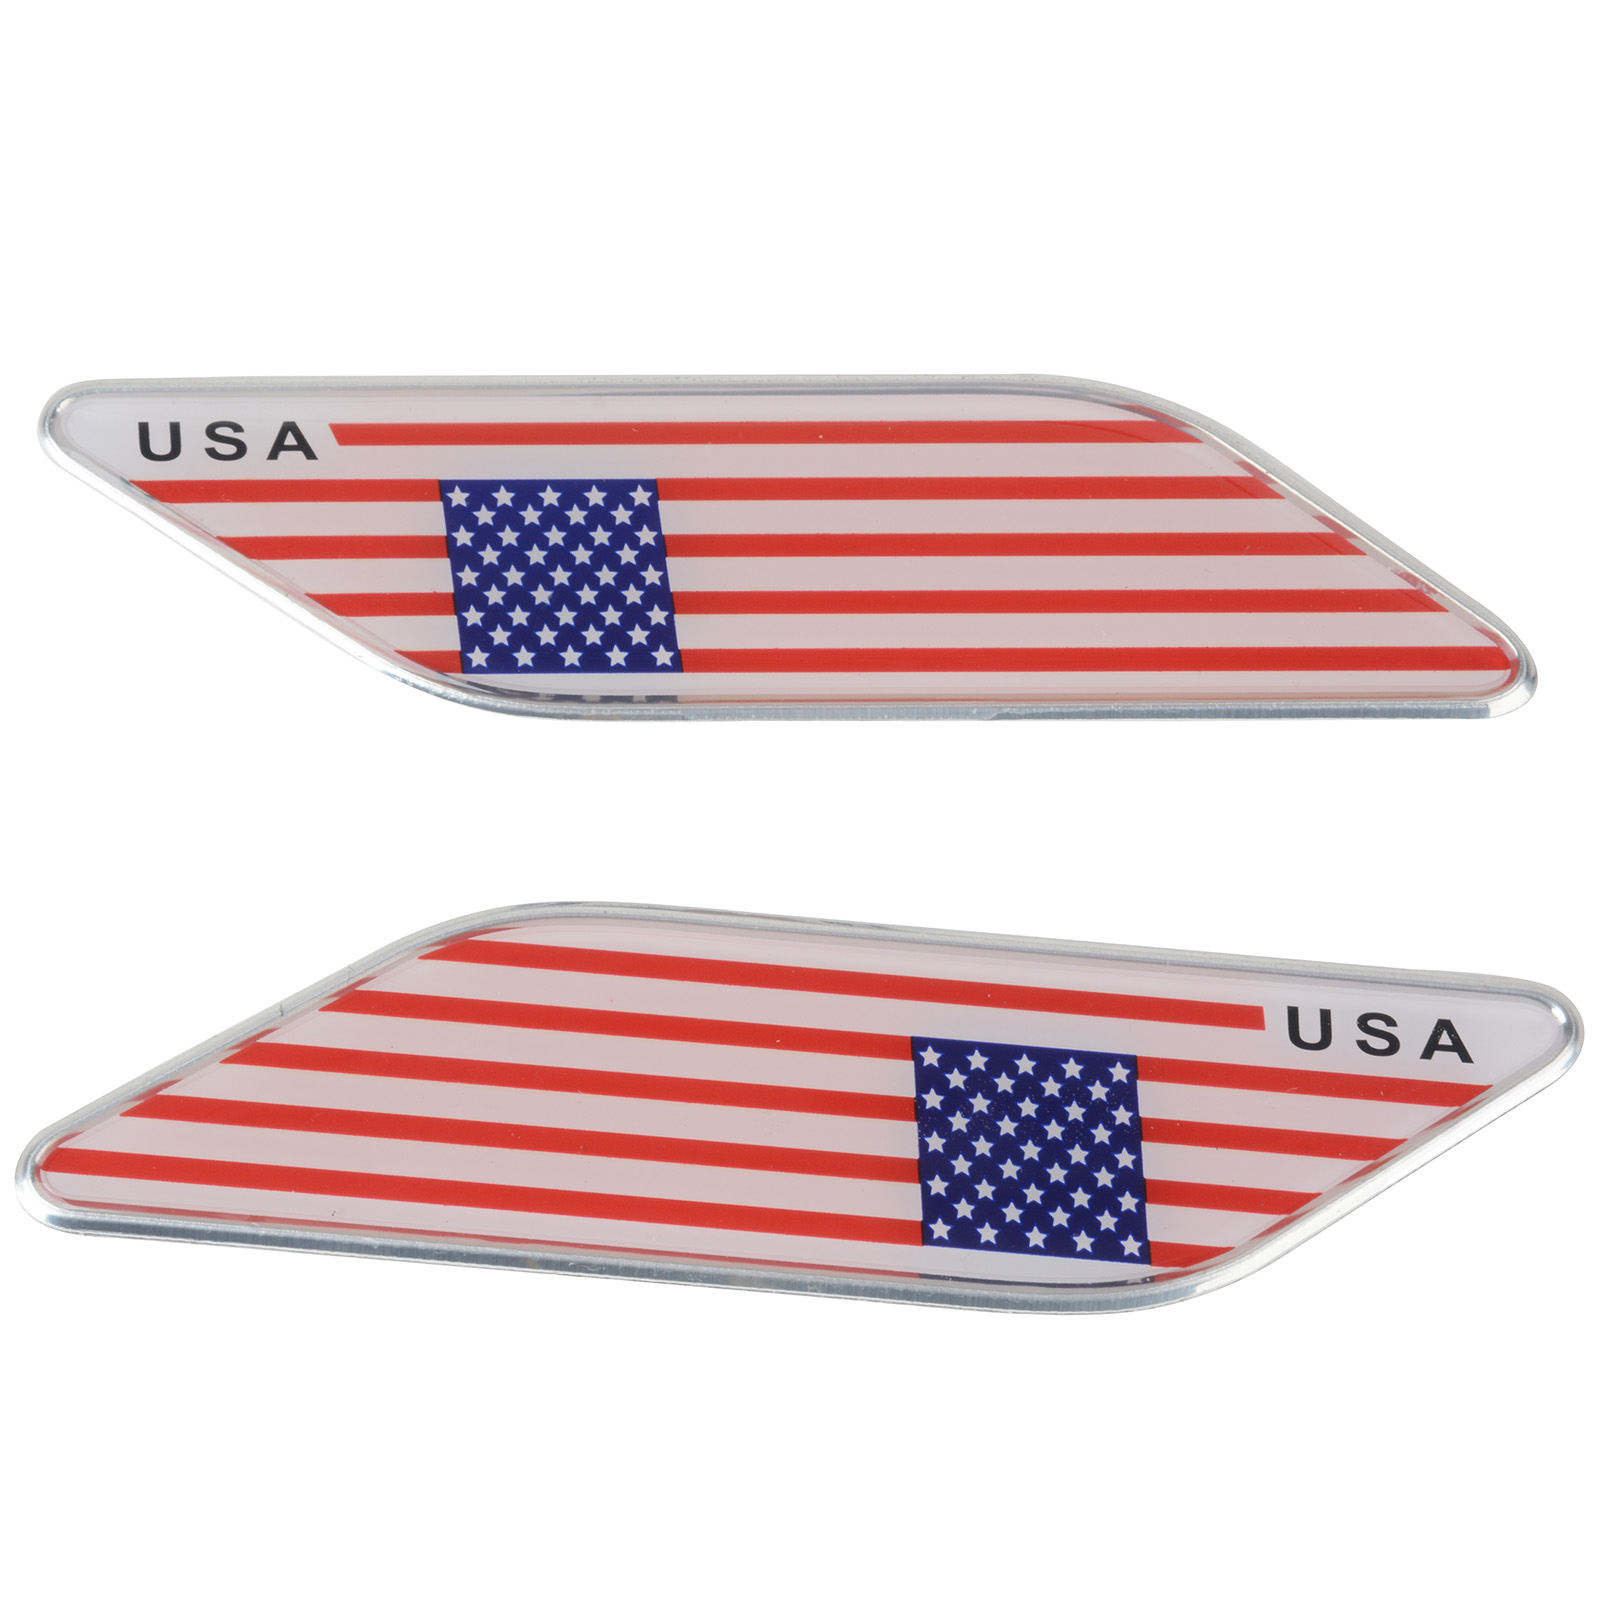 MAYITR 2pcs Metal American USA Flag Car Side Fender Skirt Emblem Badge Sticker Decal For Car Universal Use